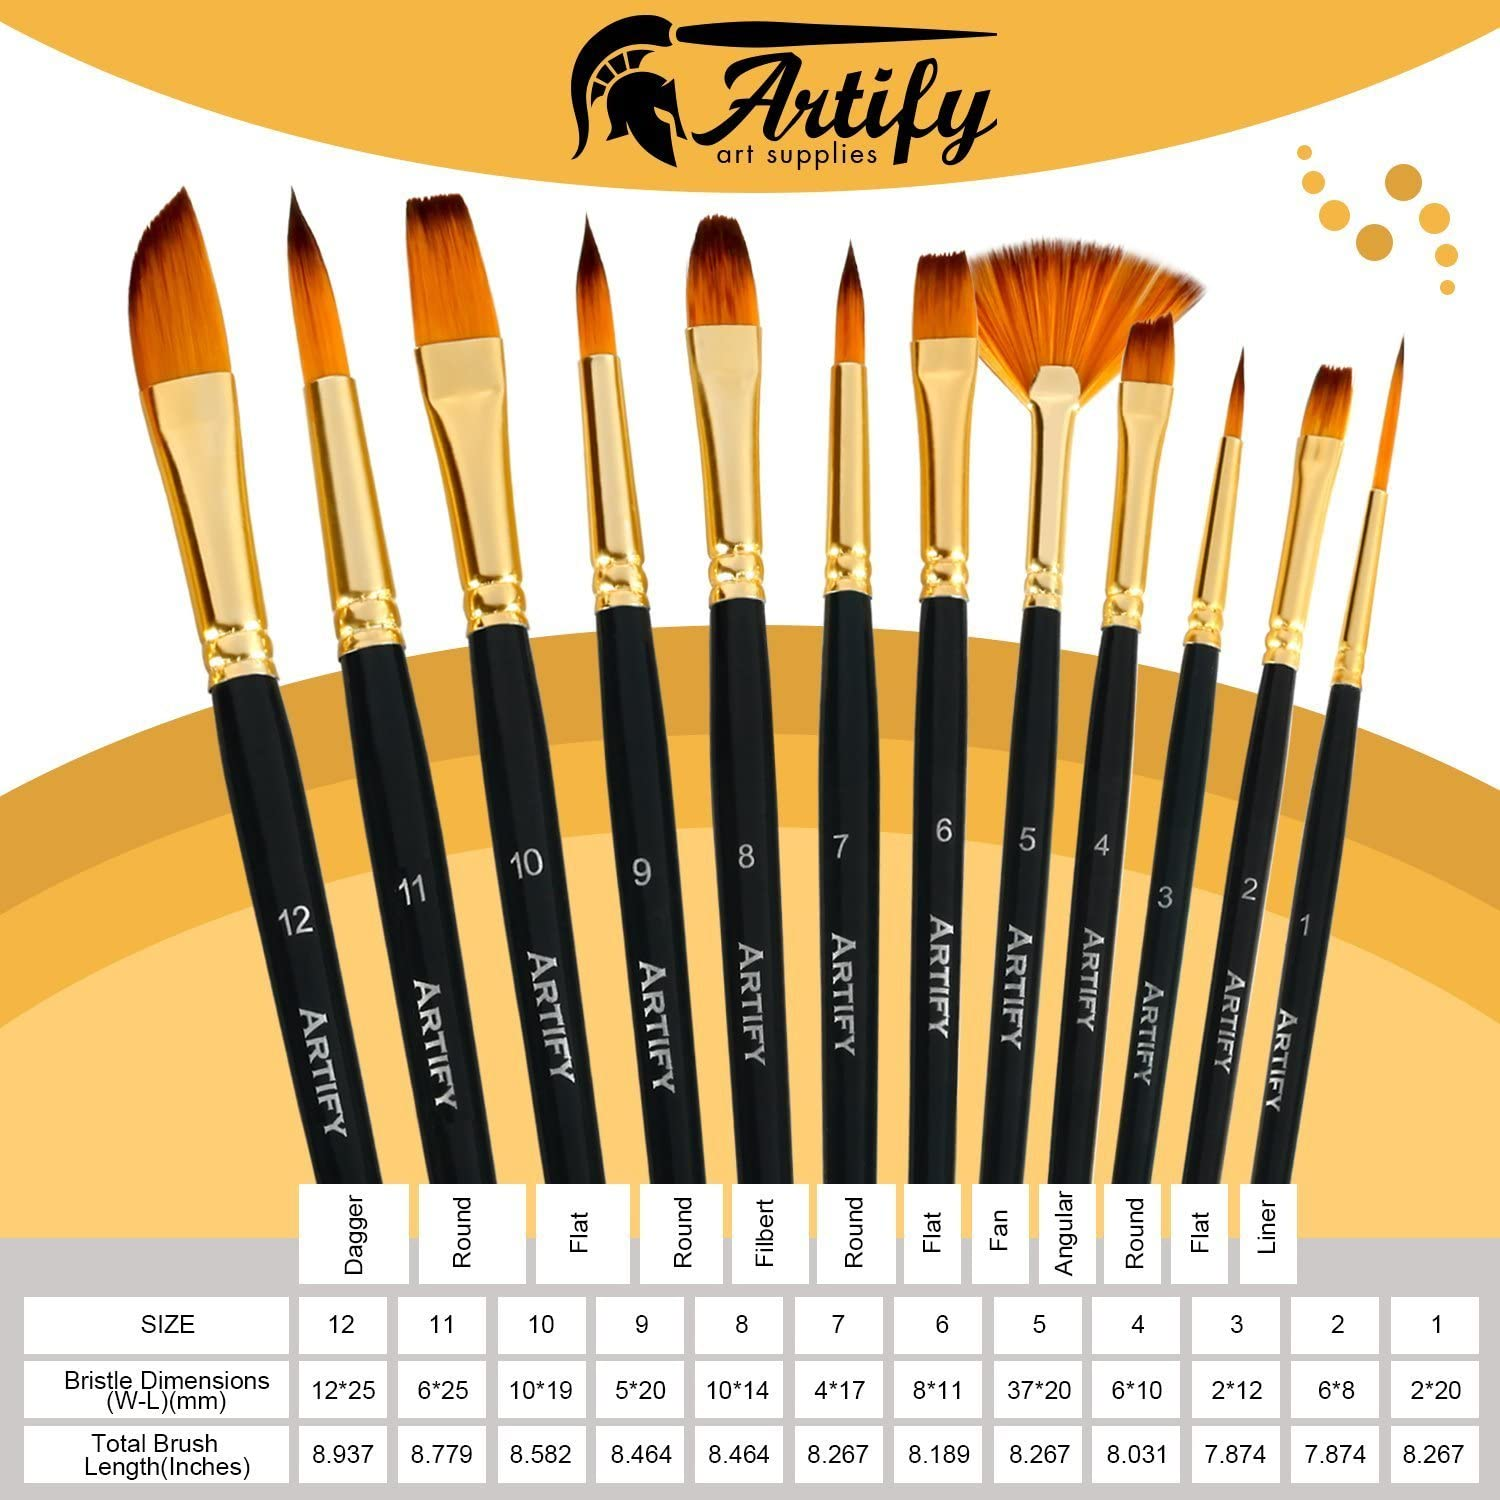 Watercolor and Gouache Artify 12 Pcs Paint Brush set Includes Pop-up Carrying Case with free Palette Knife Large Flat Brush and Sponge for Acrylic Oil